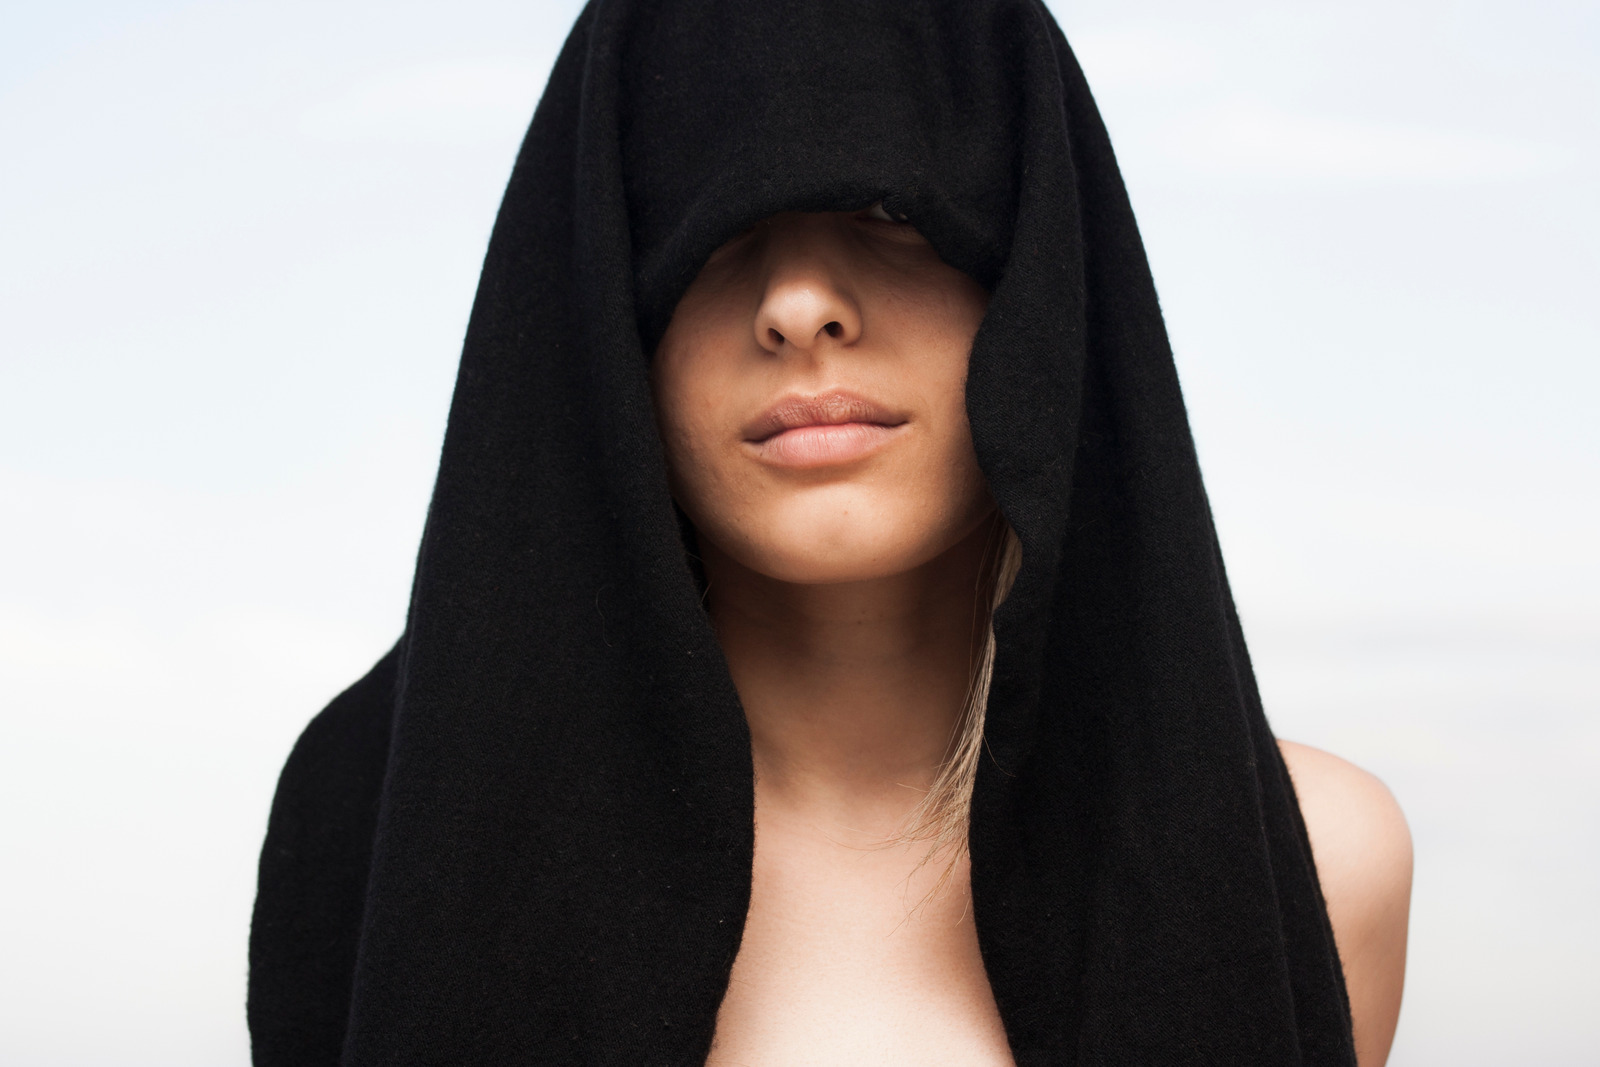 Canva - Photo of Woman With Black Towel on Her Head